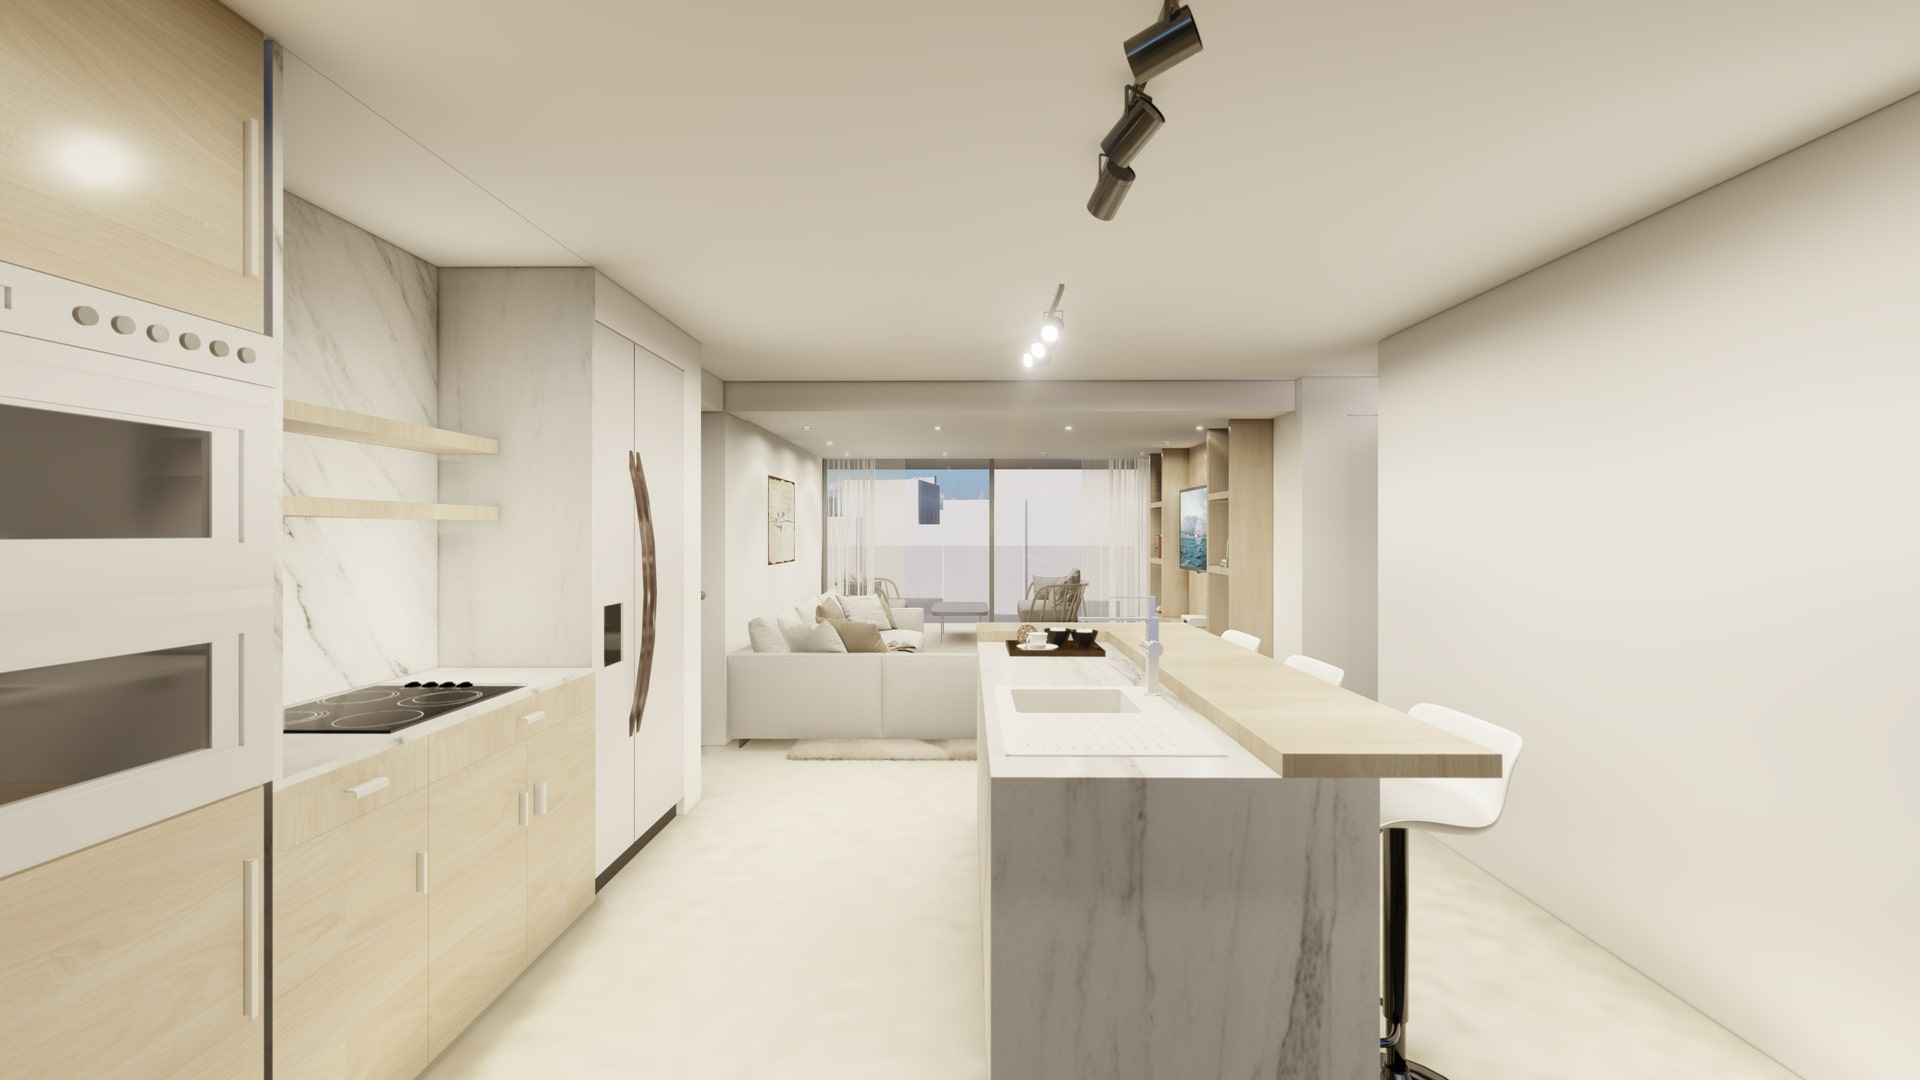 kitchen of the luxury apartments